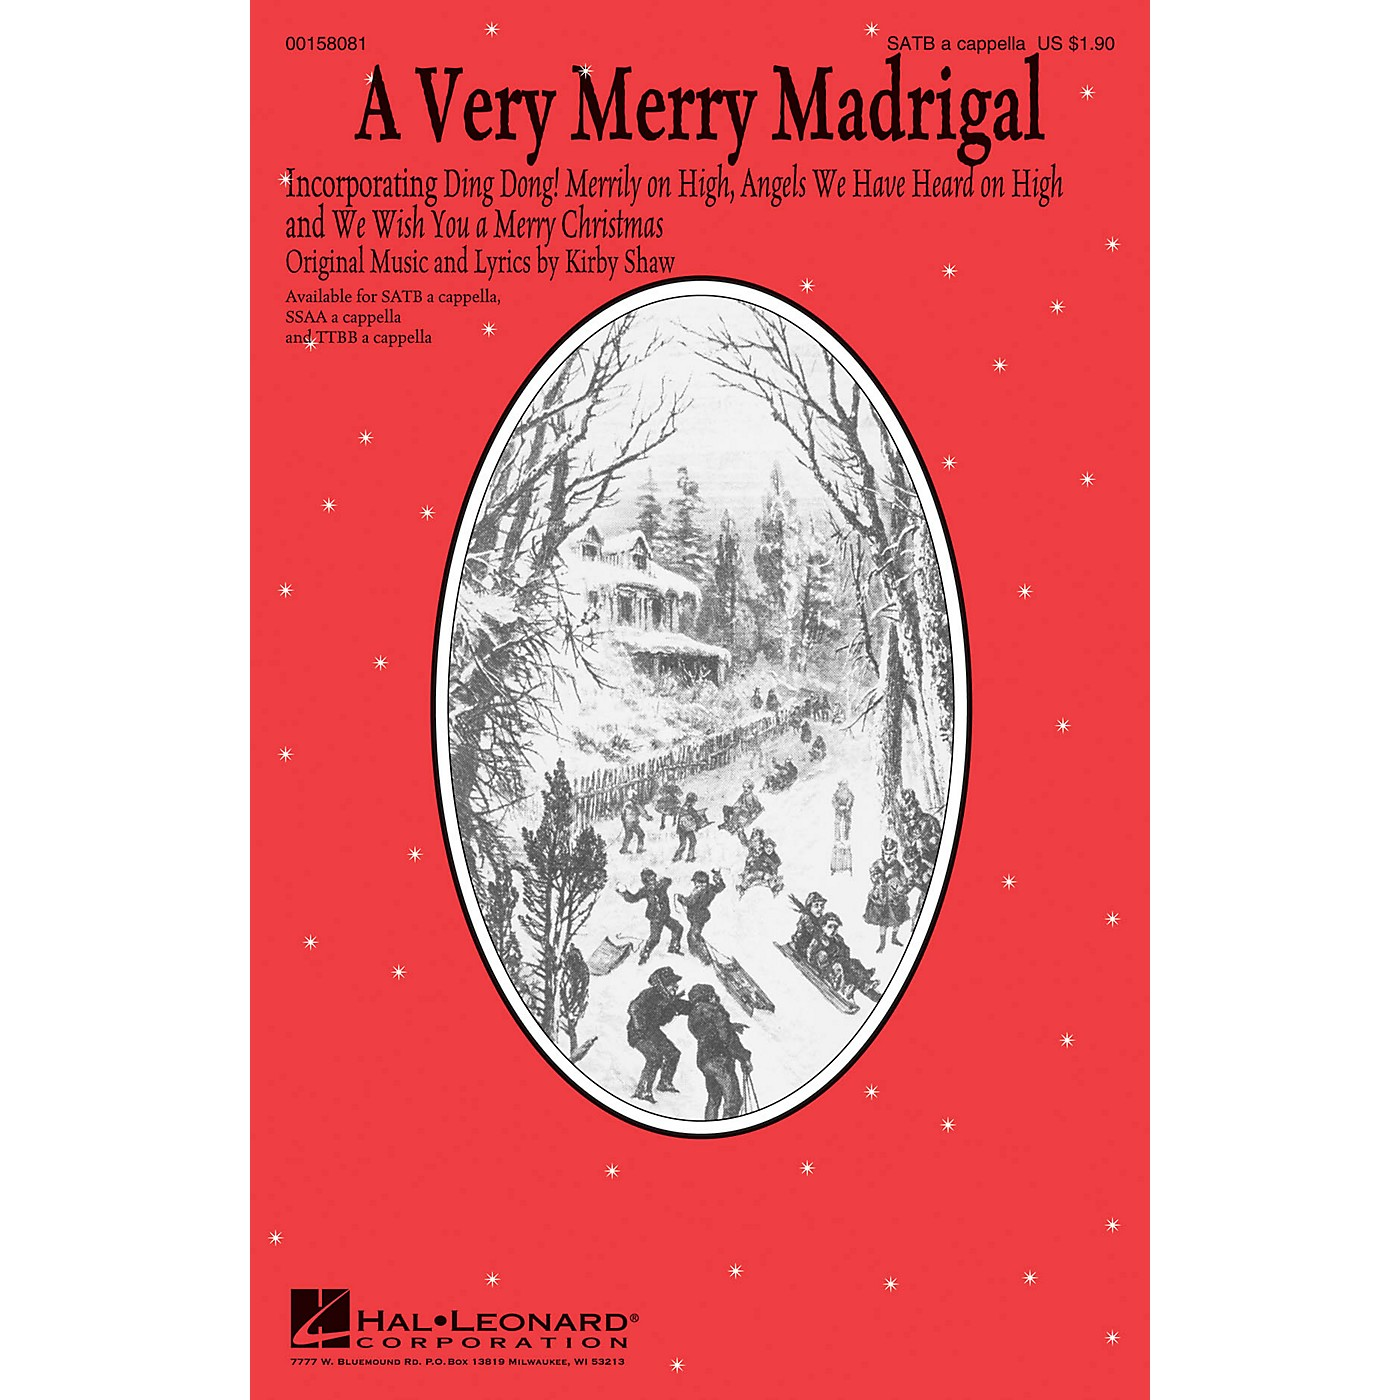 Hal Leonard A Very Merry Madrigal SATB a cappella composed by Kirby Shaw thumbnail